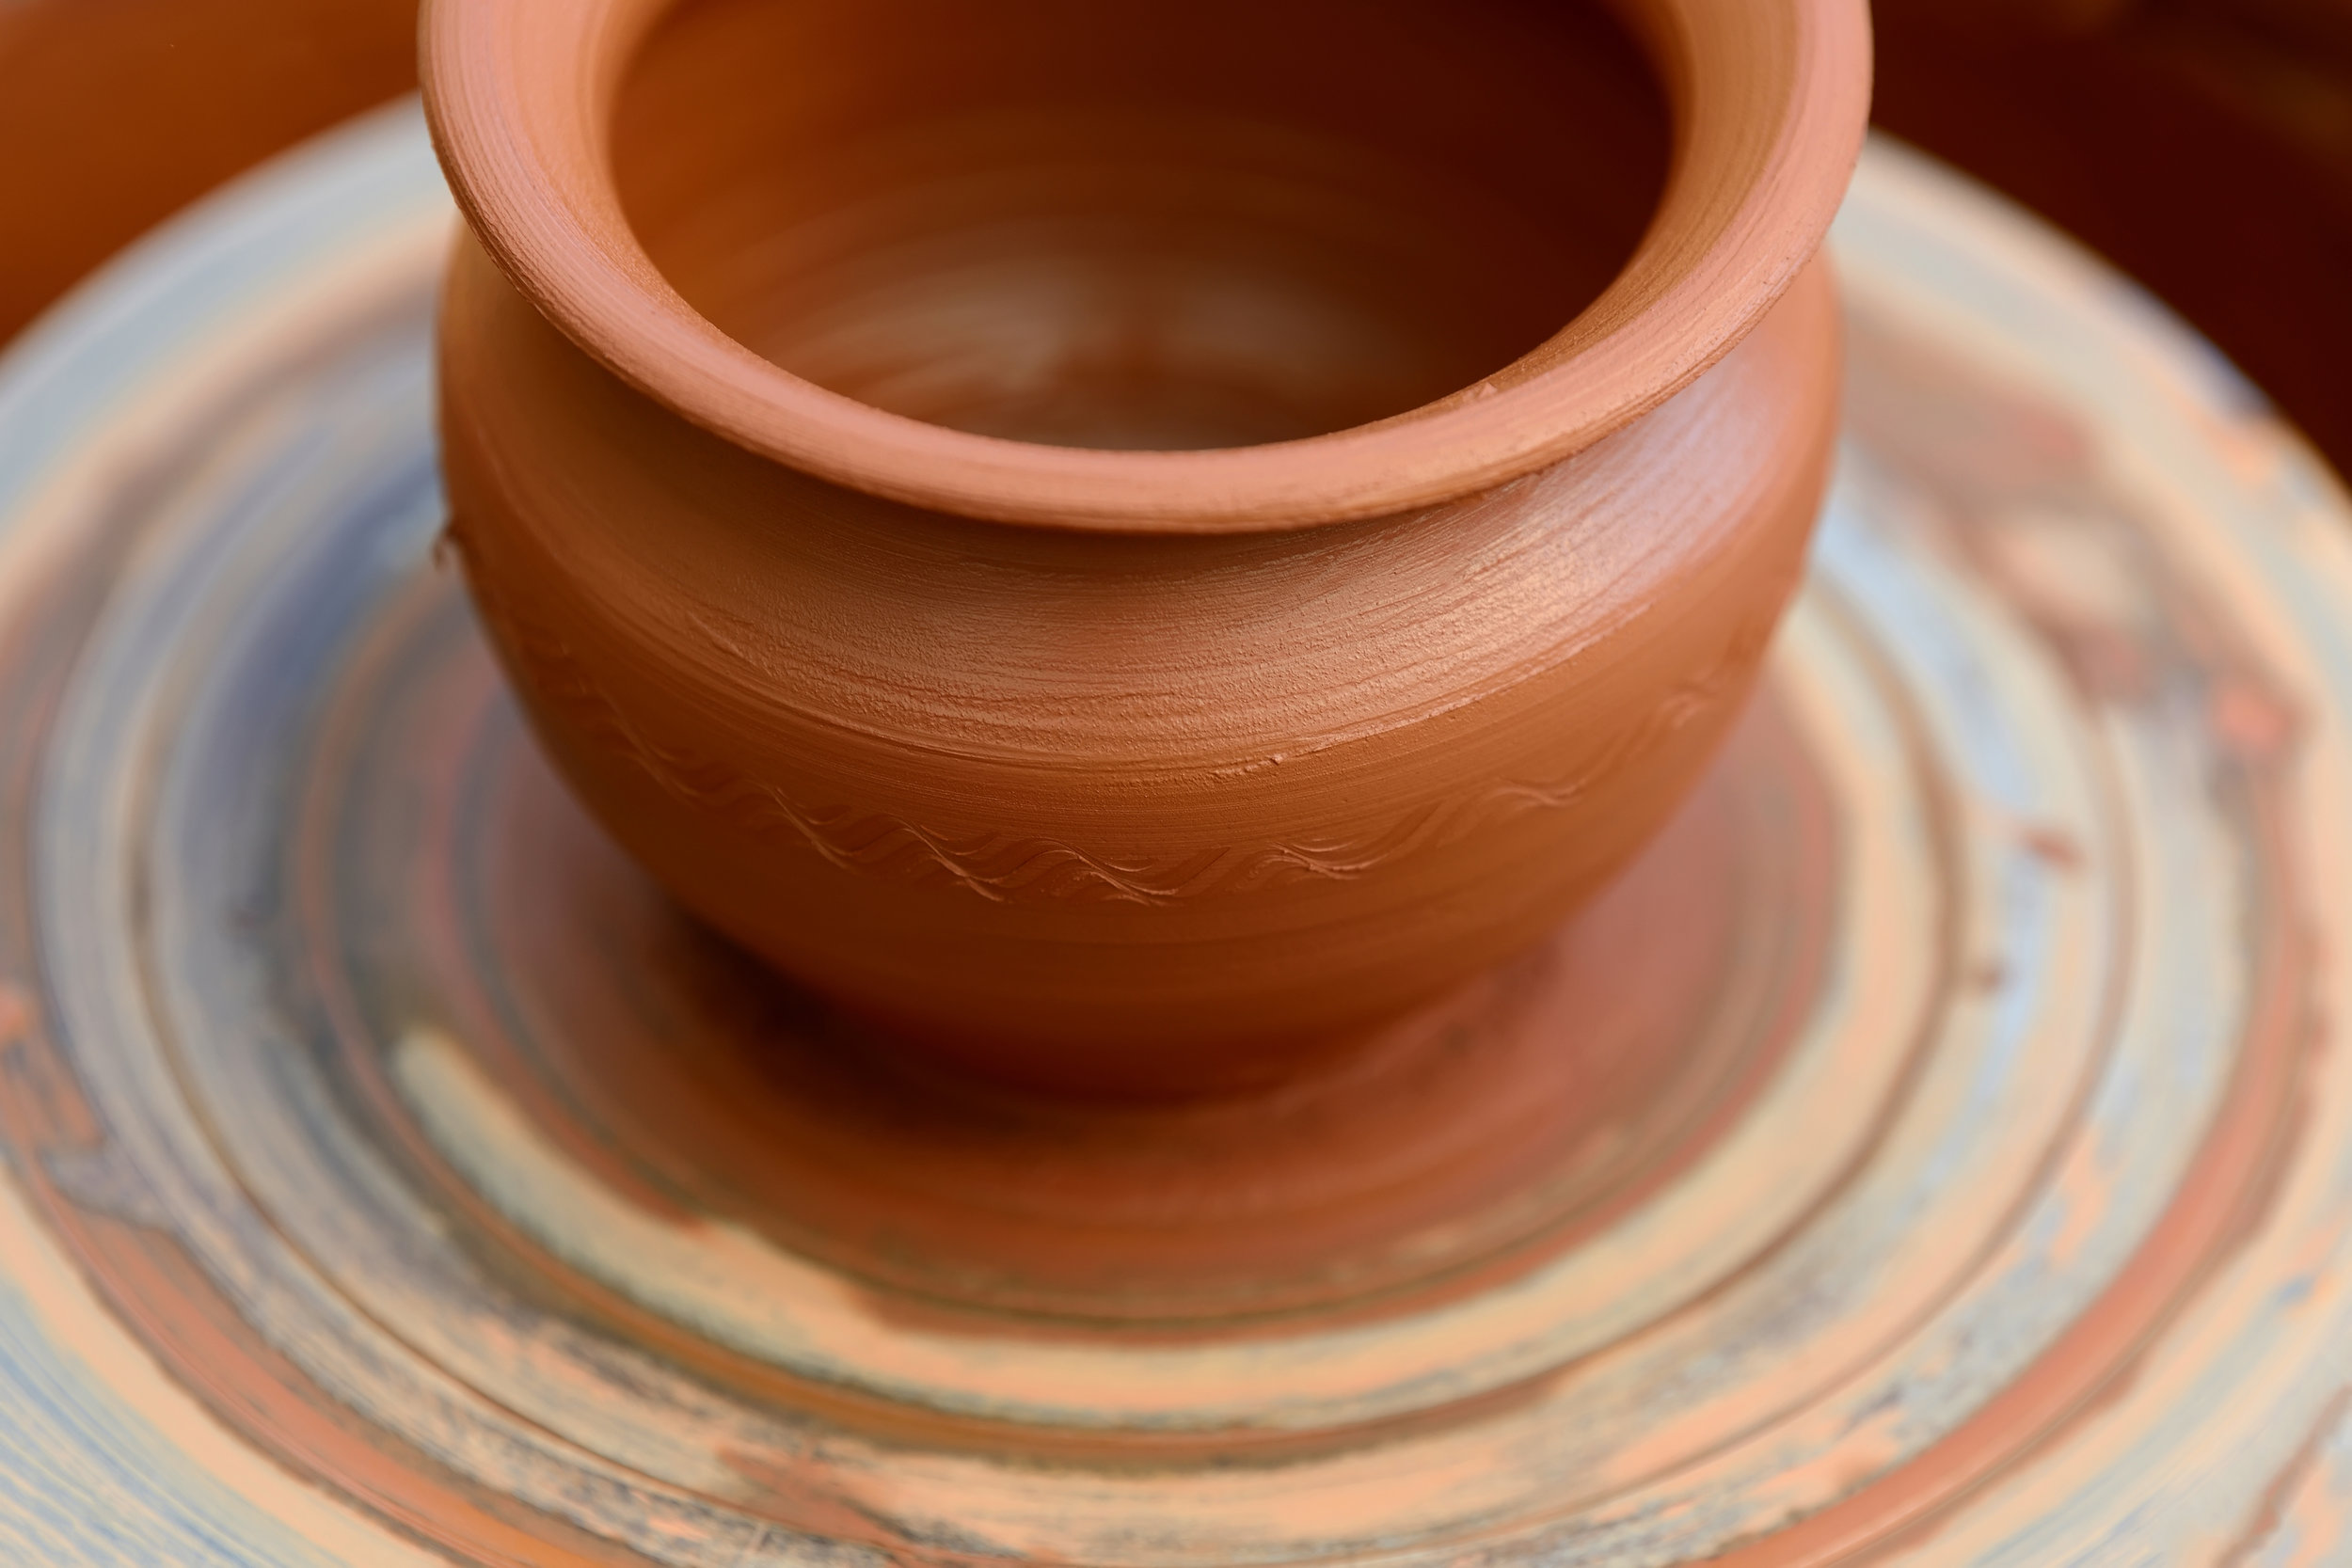 Beginner Courses - The starting place for all pottery beginners